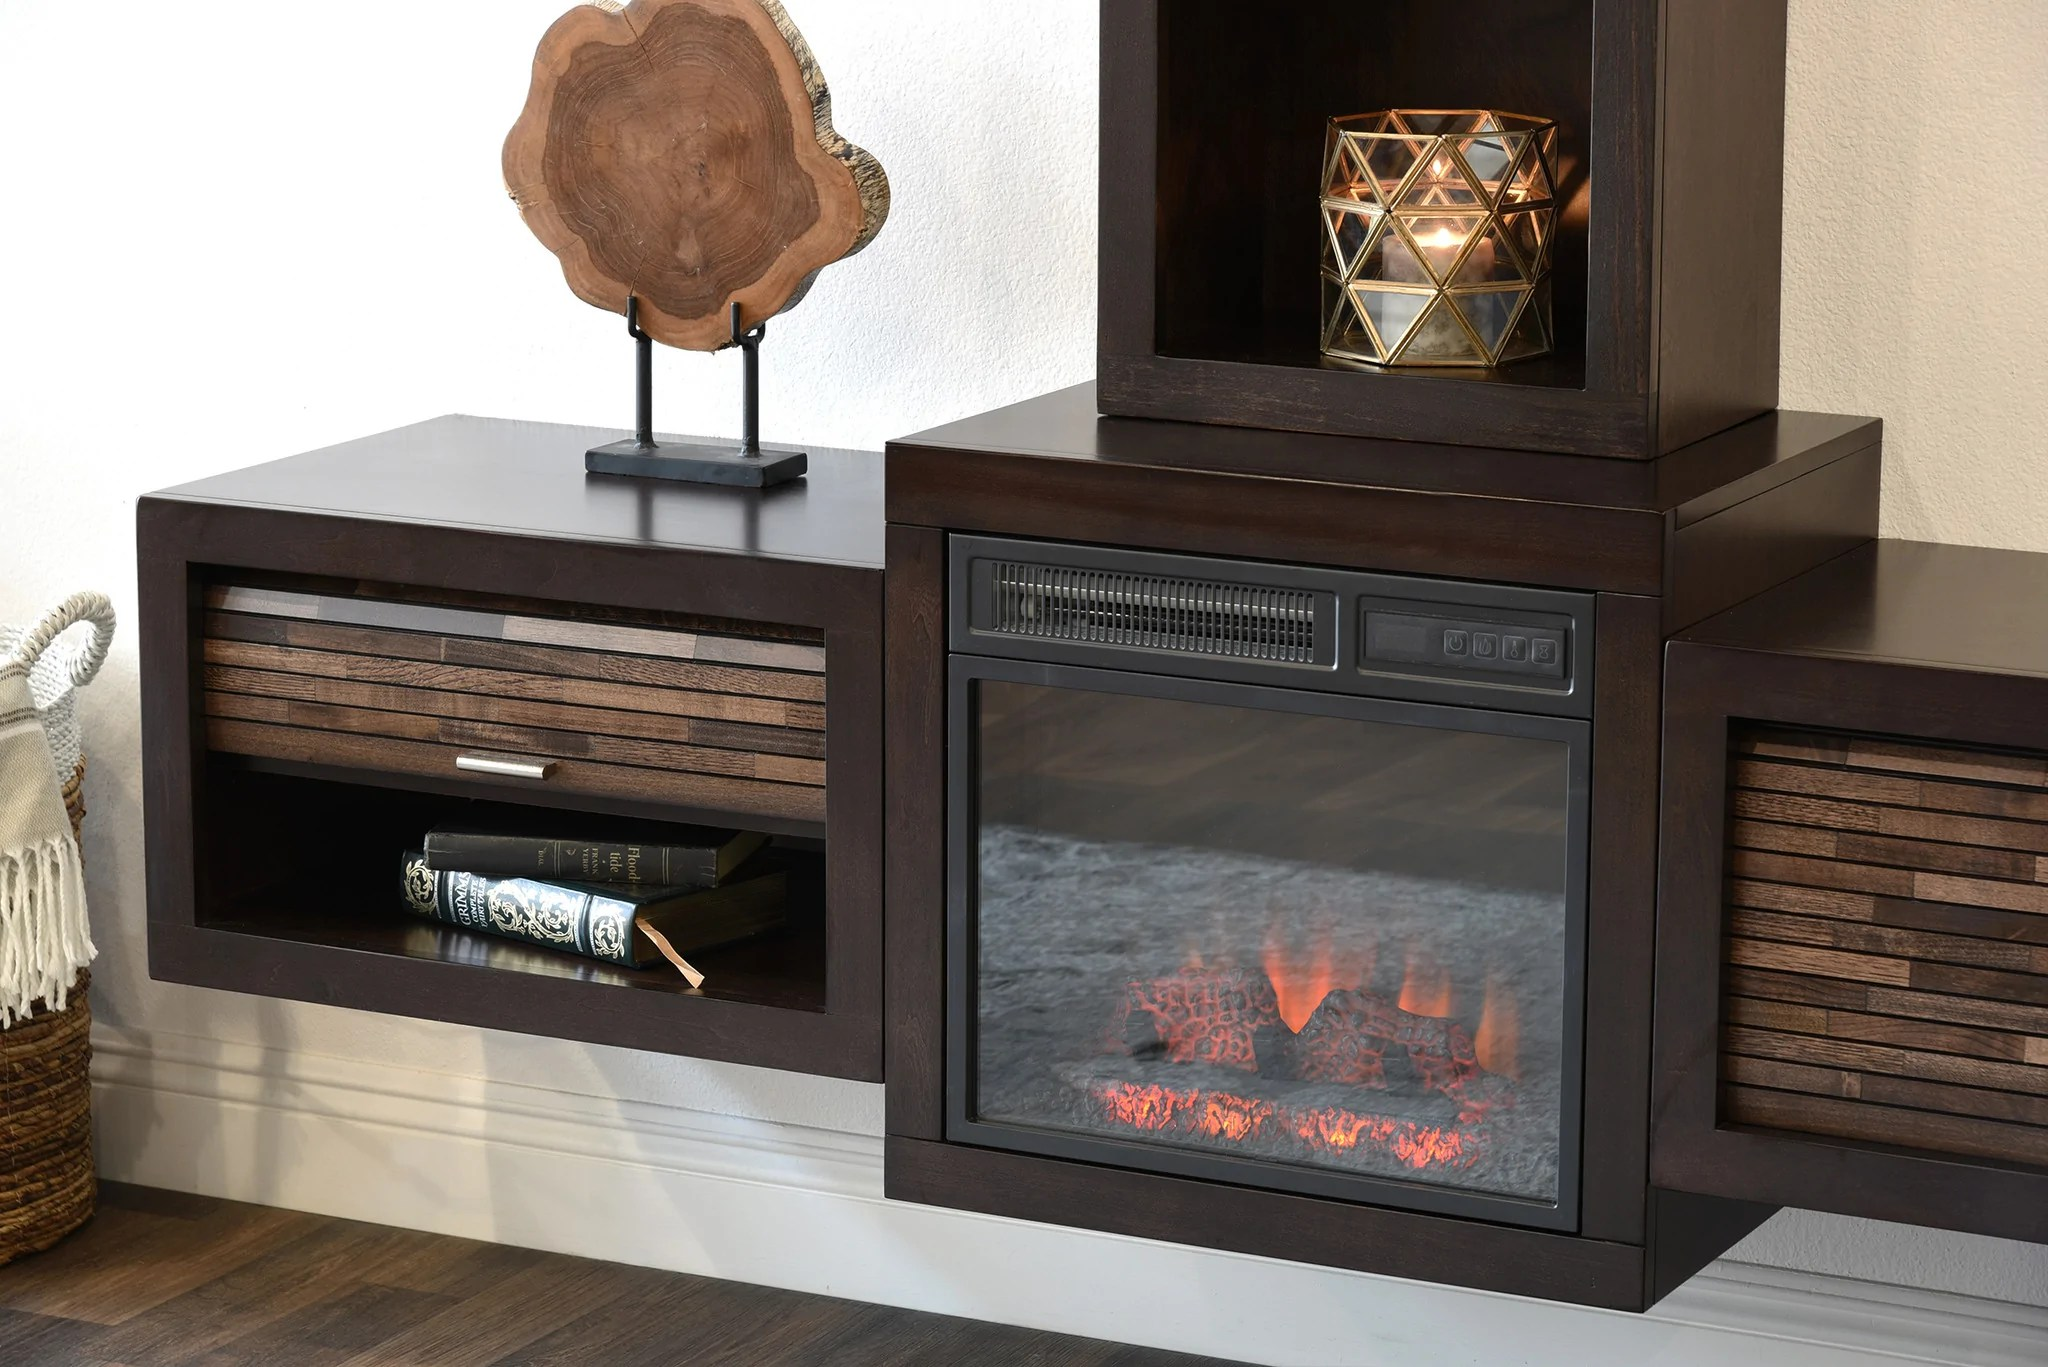 Floating Wall Mount Media Console With Fireplace and Bookcase  ECO GE  Woodwaves